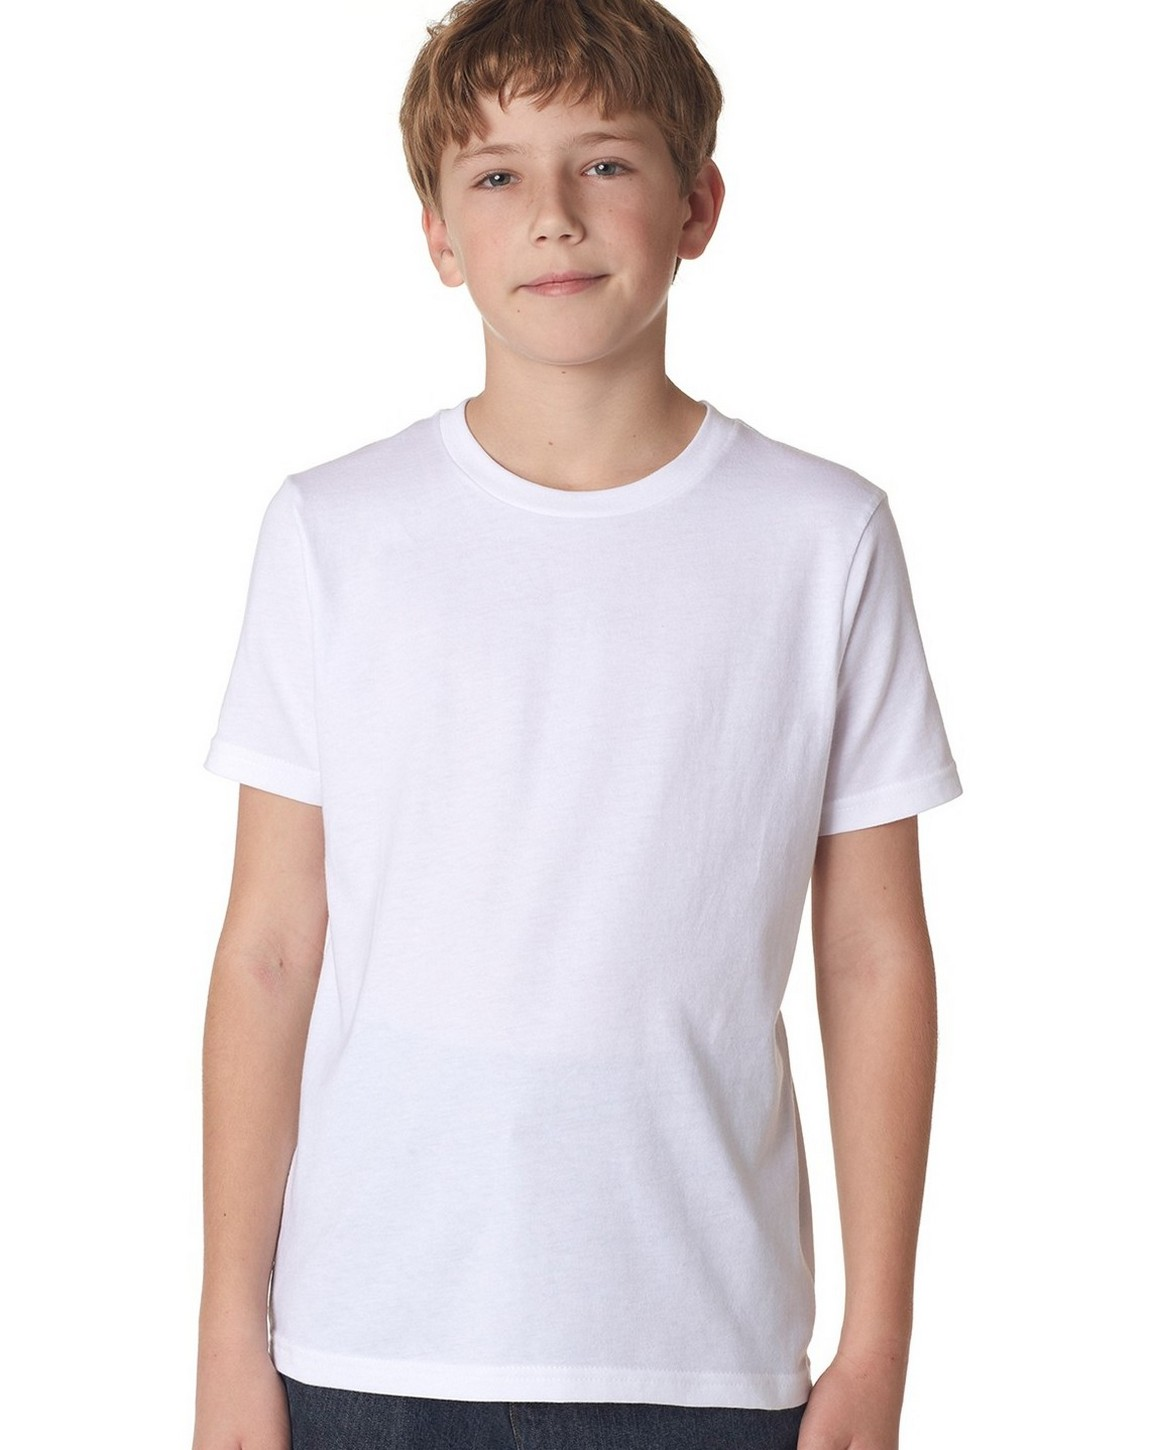 Next level 3310 boys short sleeve crew for Next level homes